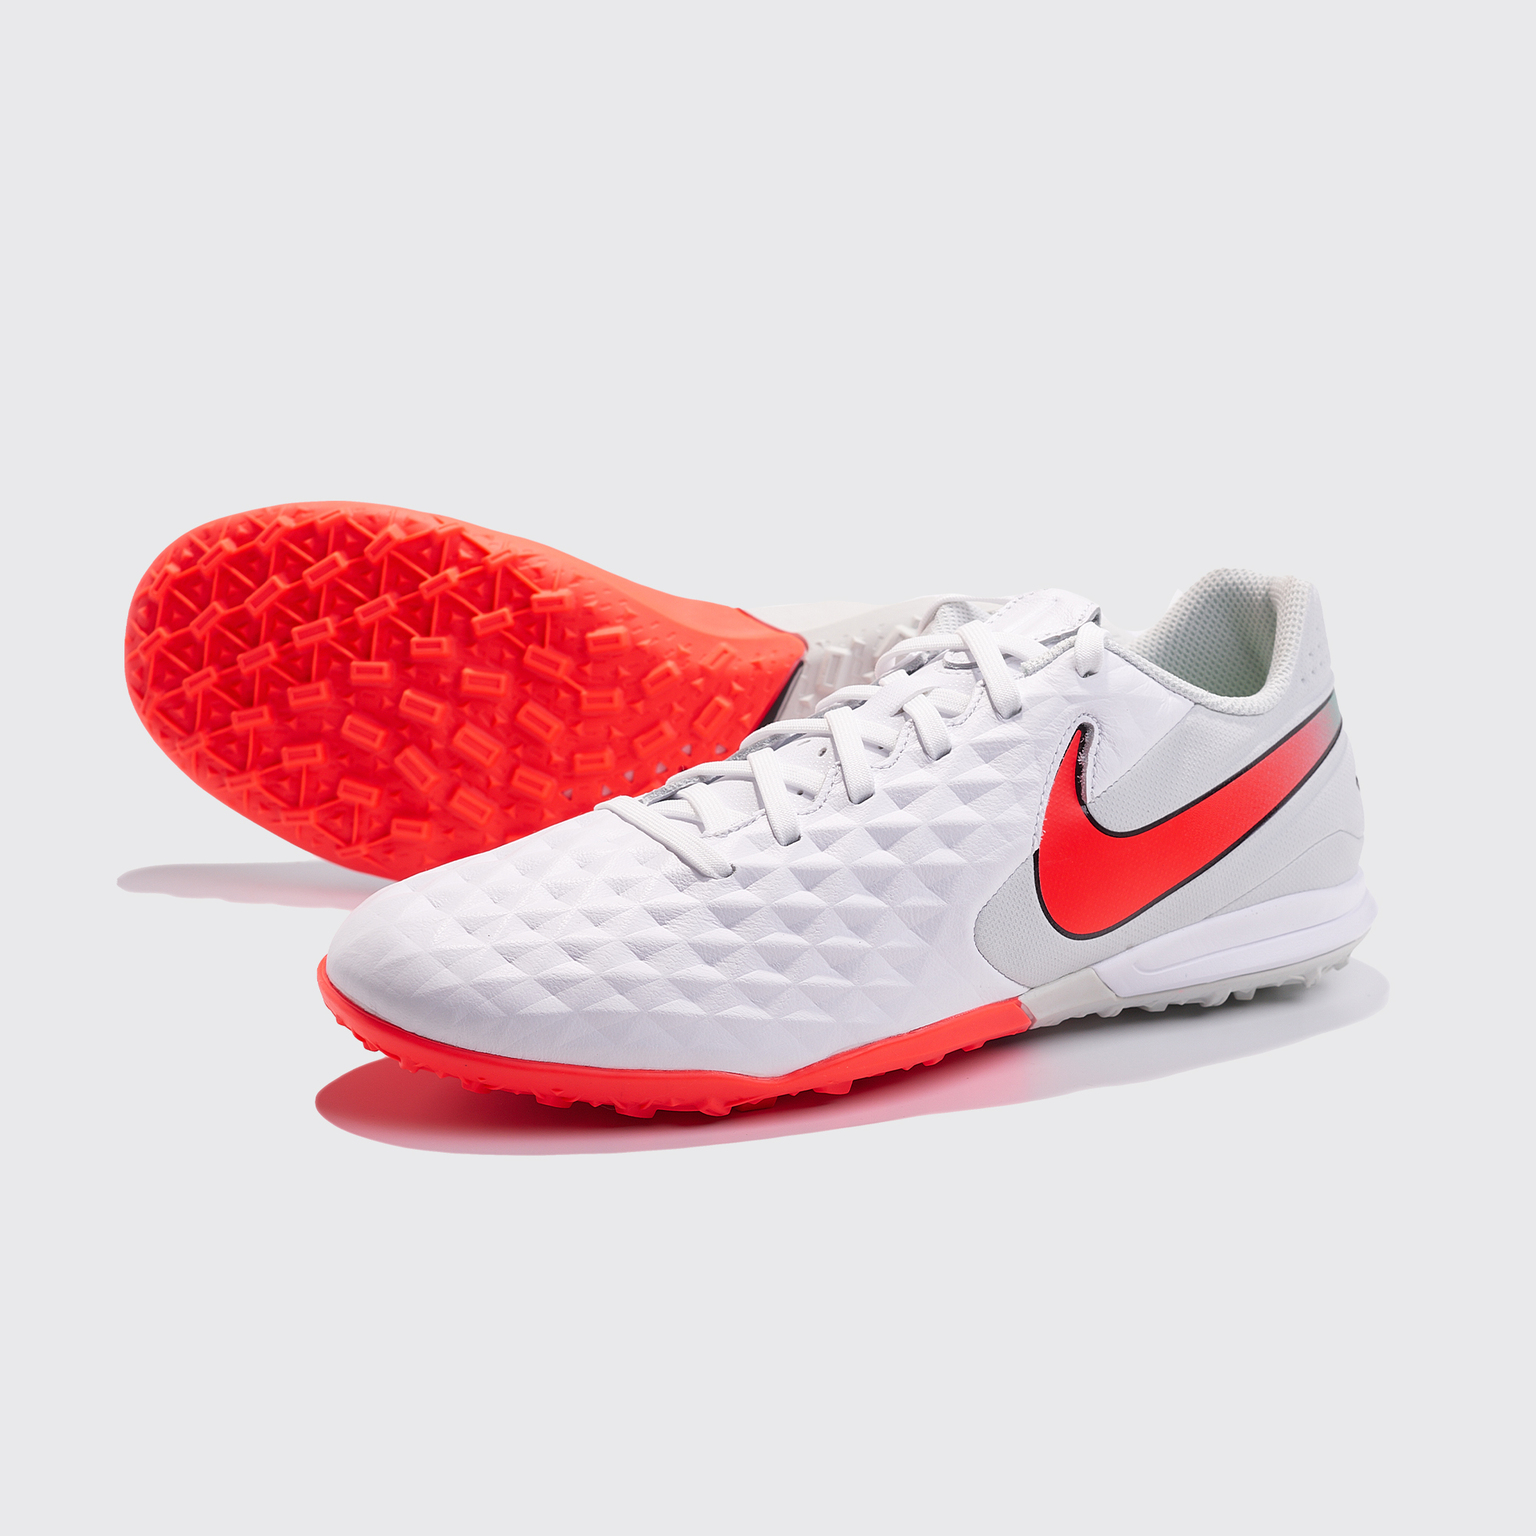 Шиповки Nike Legend 8 Academy TF AT6100-163 шиповки детские nike legend 8 academy tf at5736 606